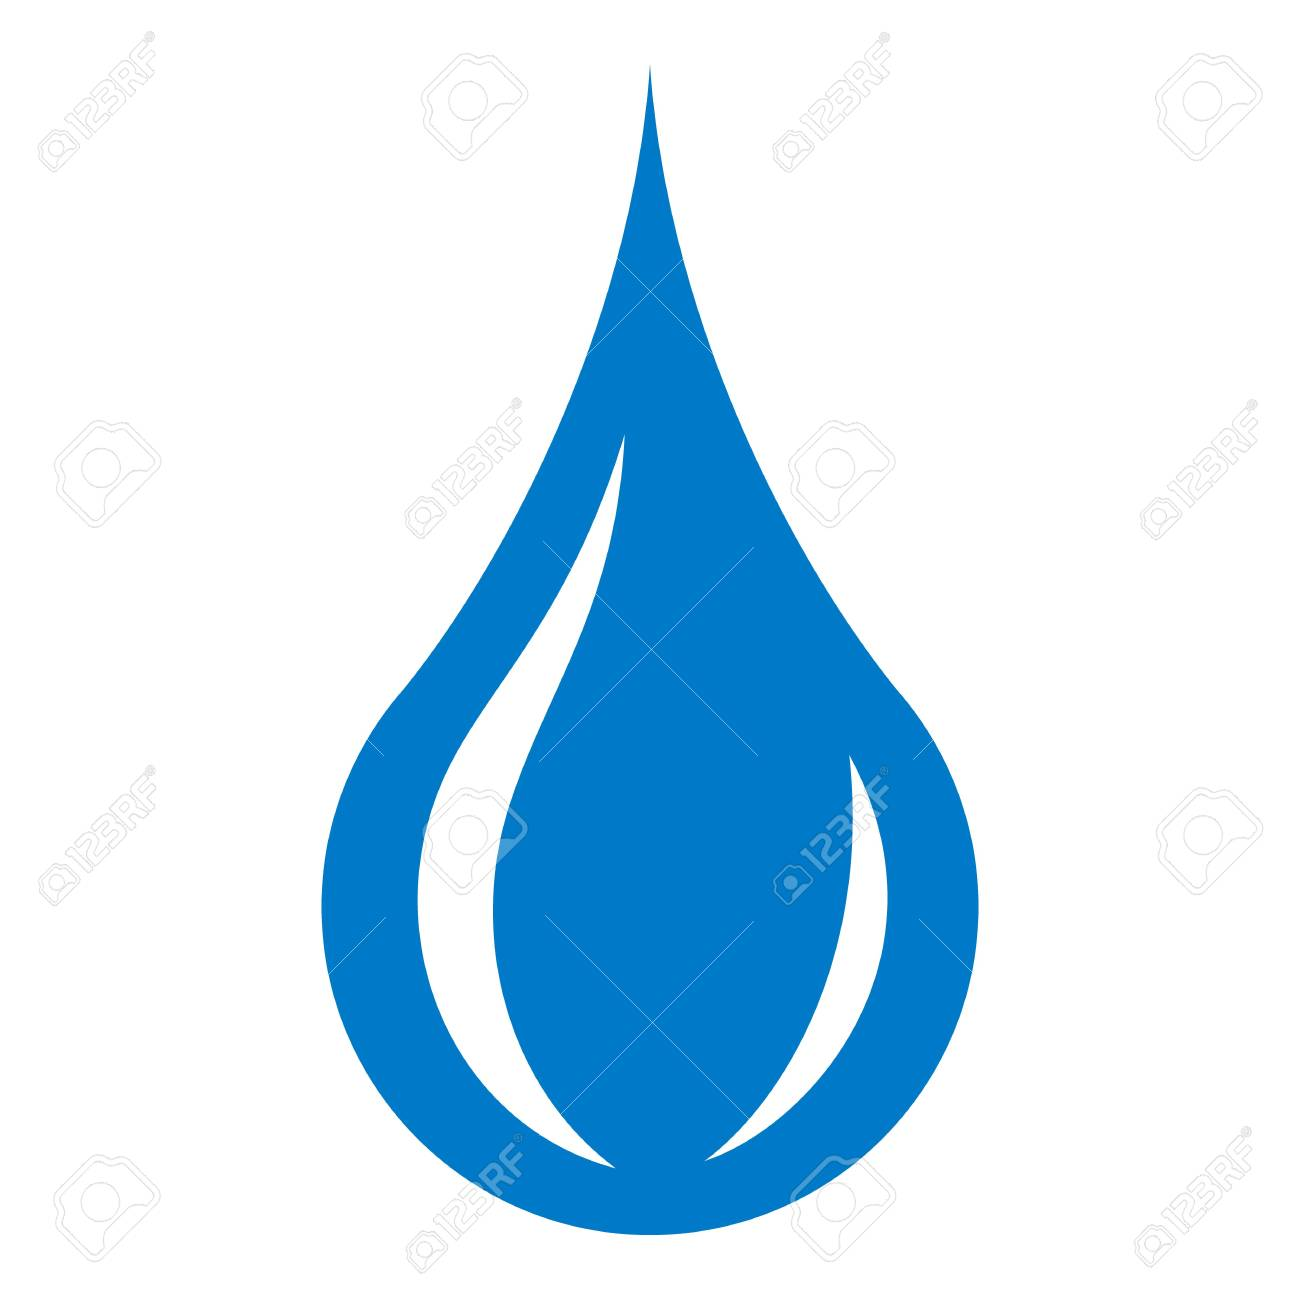 raindrop icon simple illustration of raindrop vector icon for rh 123rf com raindrop vector image raindrop vector shapes